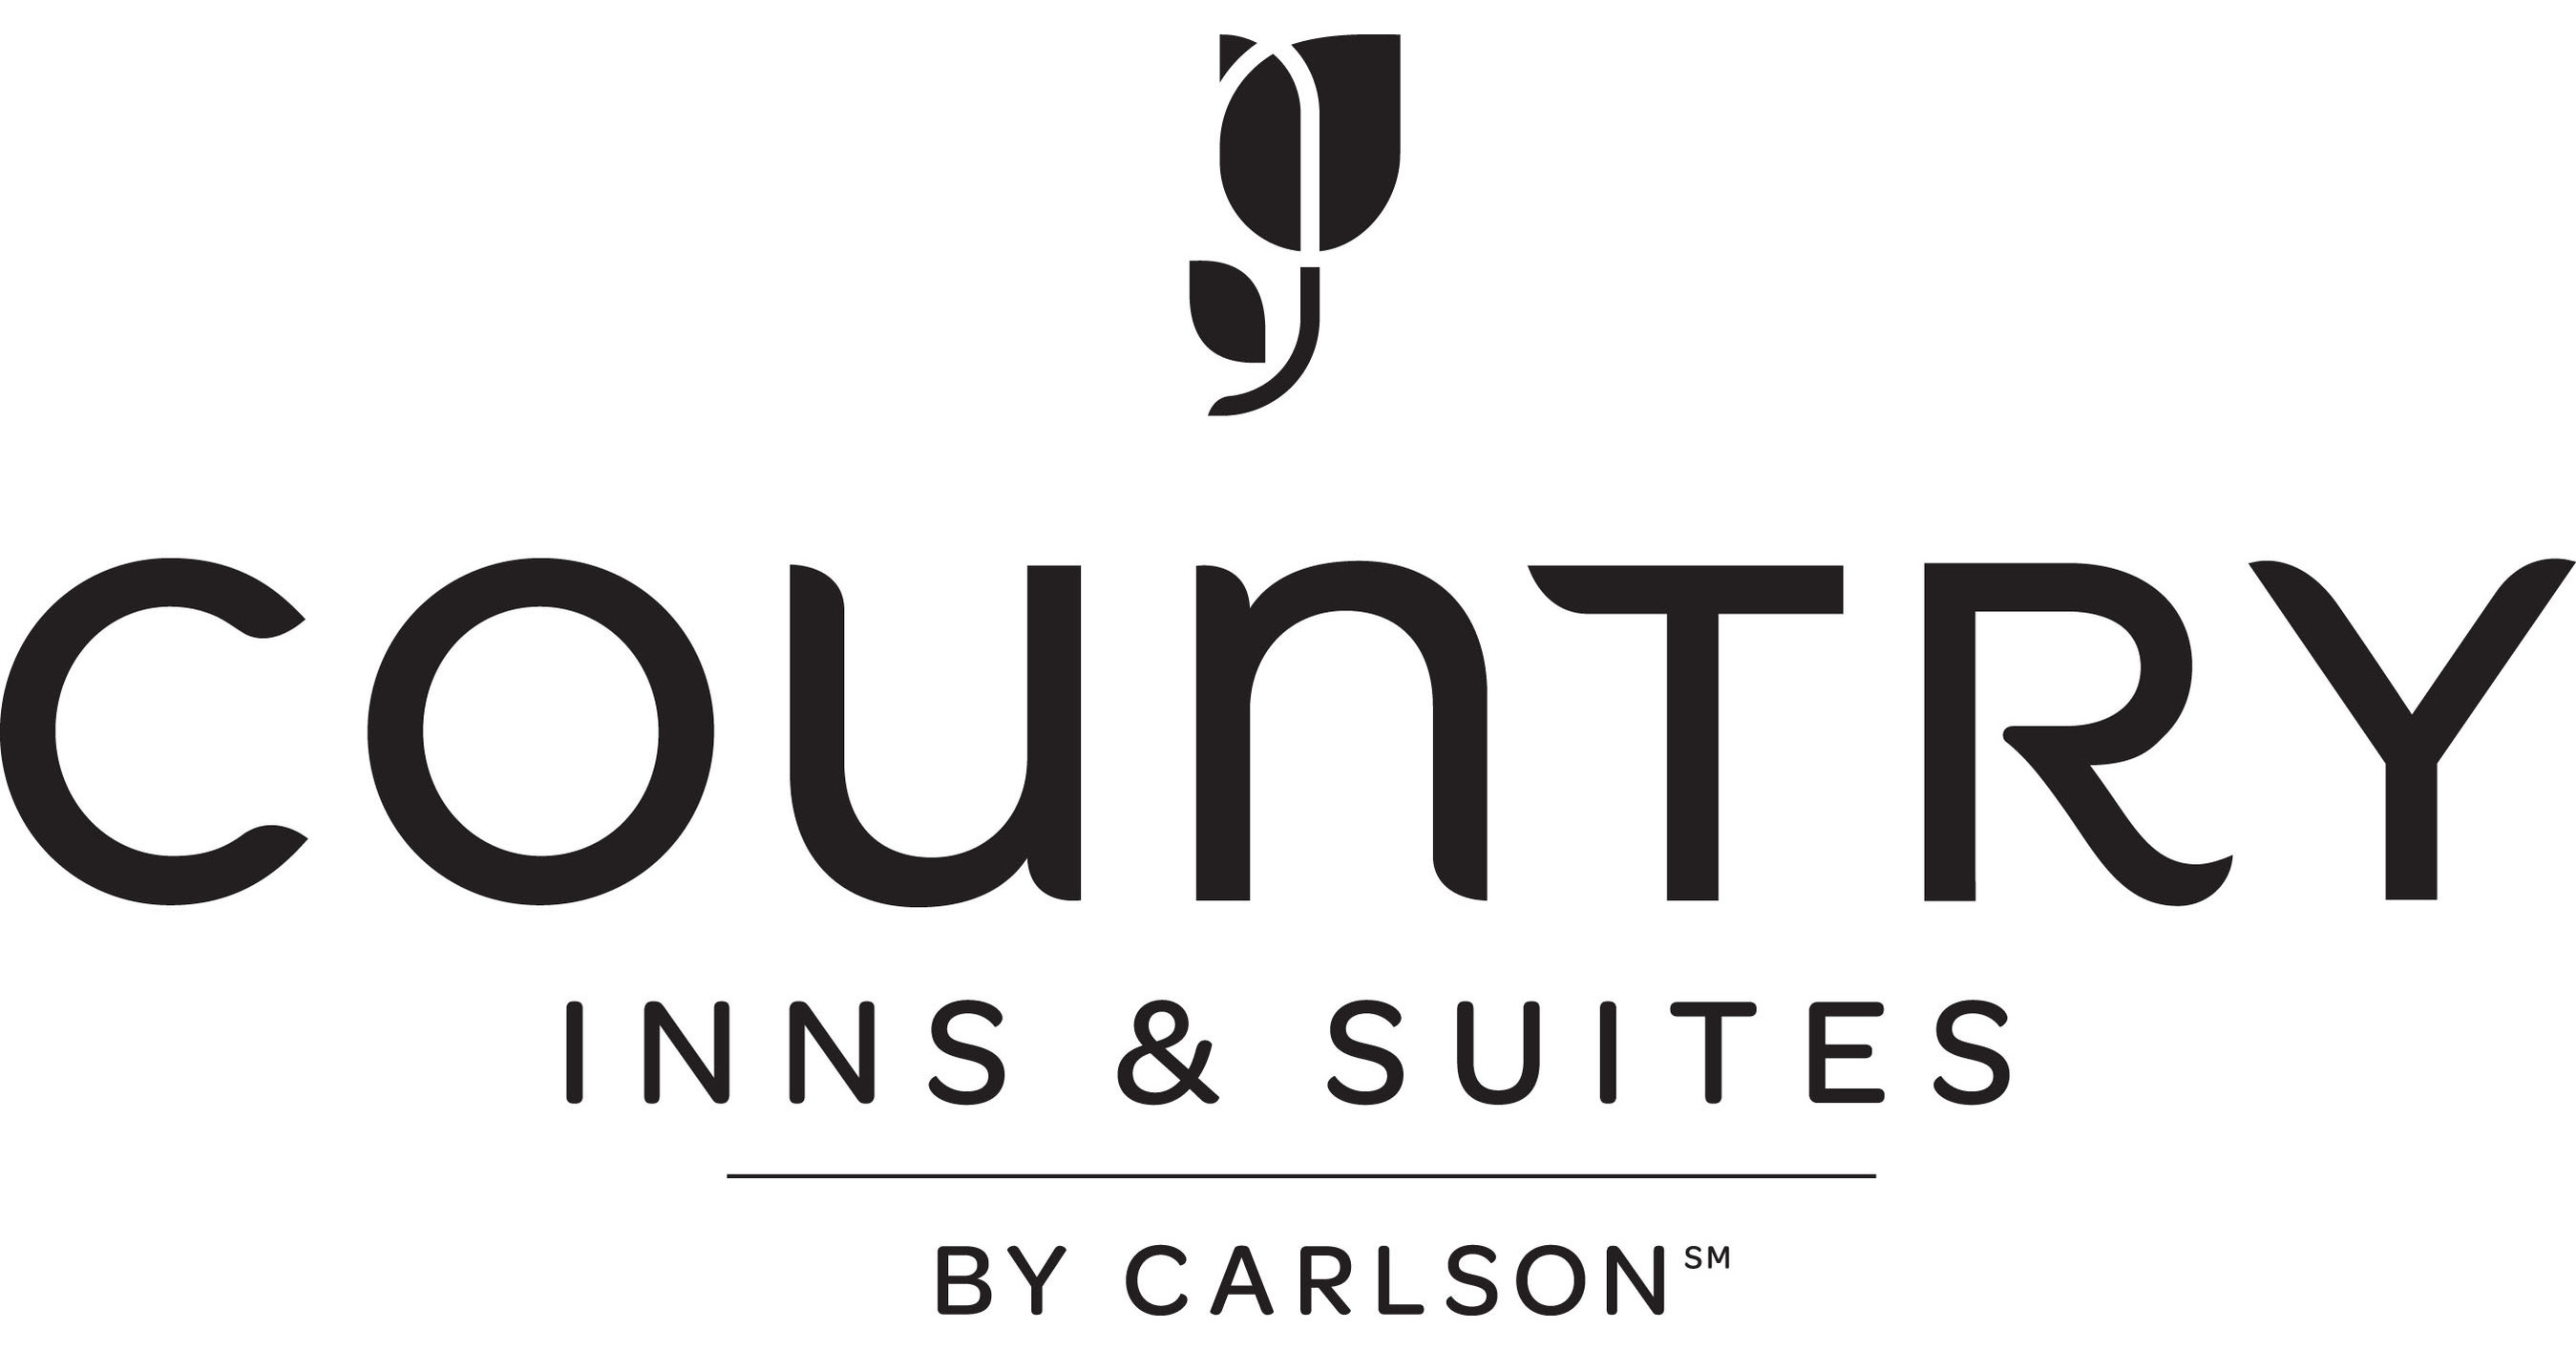 Country Inns & Suites By Carlson Launches Military 1st ... Country Inn And Suites Logo